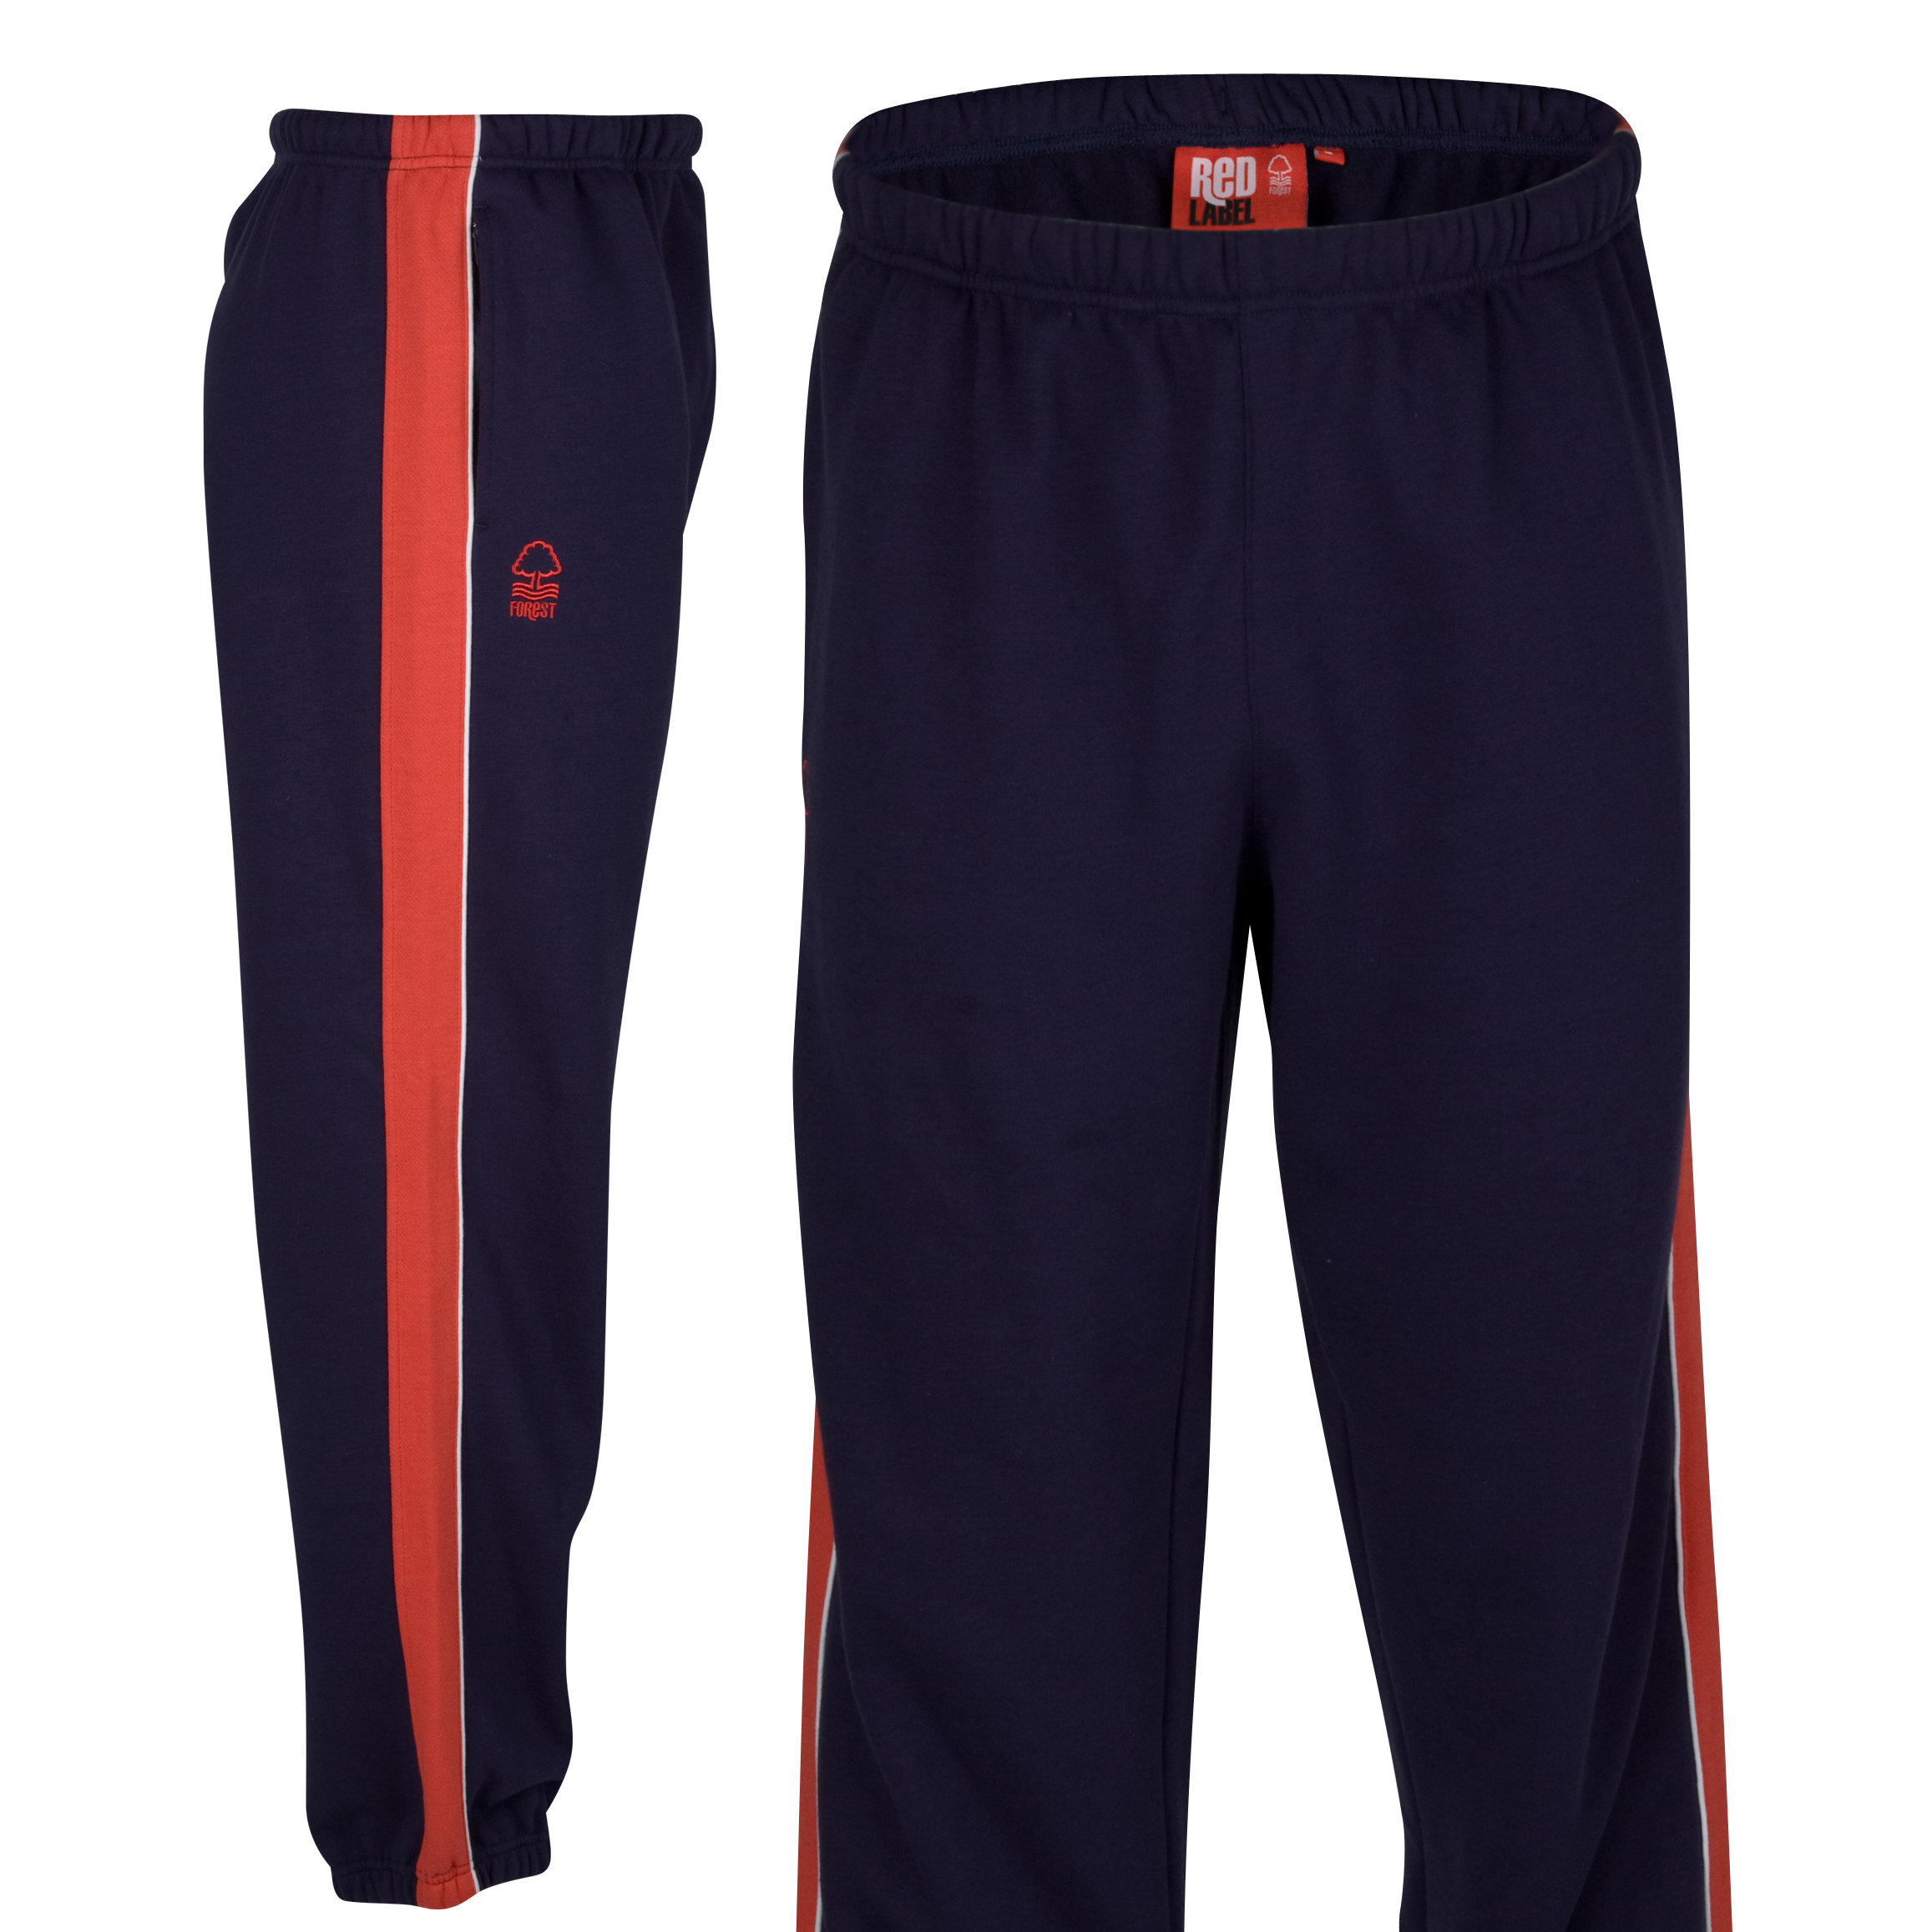 Nottingham Forest Essential Mountain Pant - Navy/Red - Older Boys